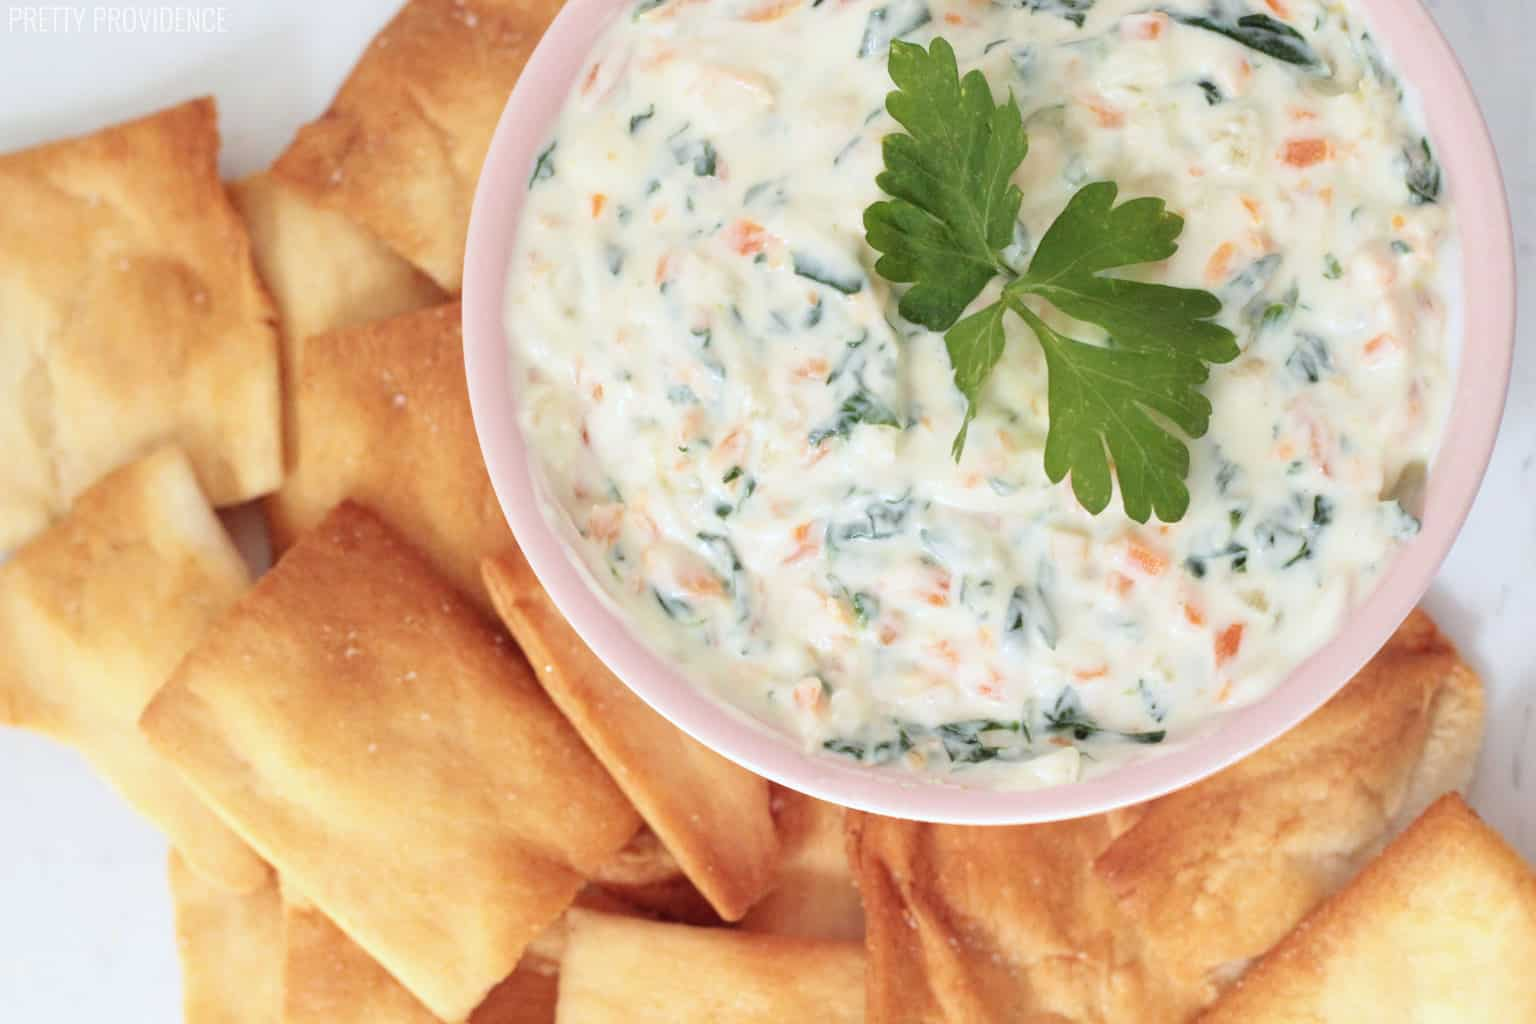 Healthy Veggie Dip in a pink bowl, parsley garnish on top and pita chips around the bowl.